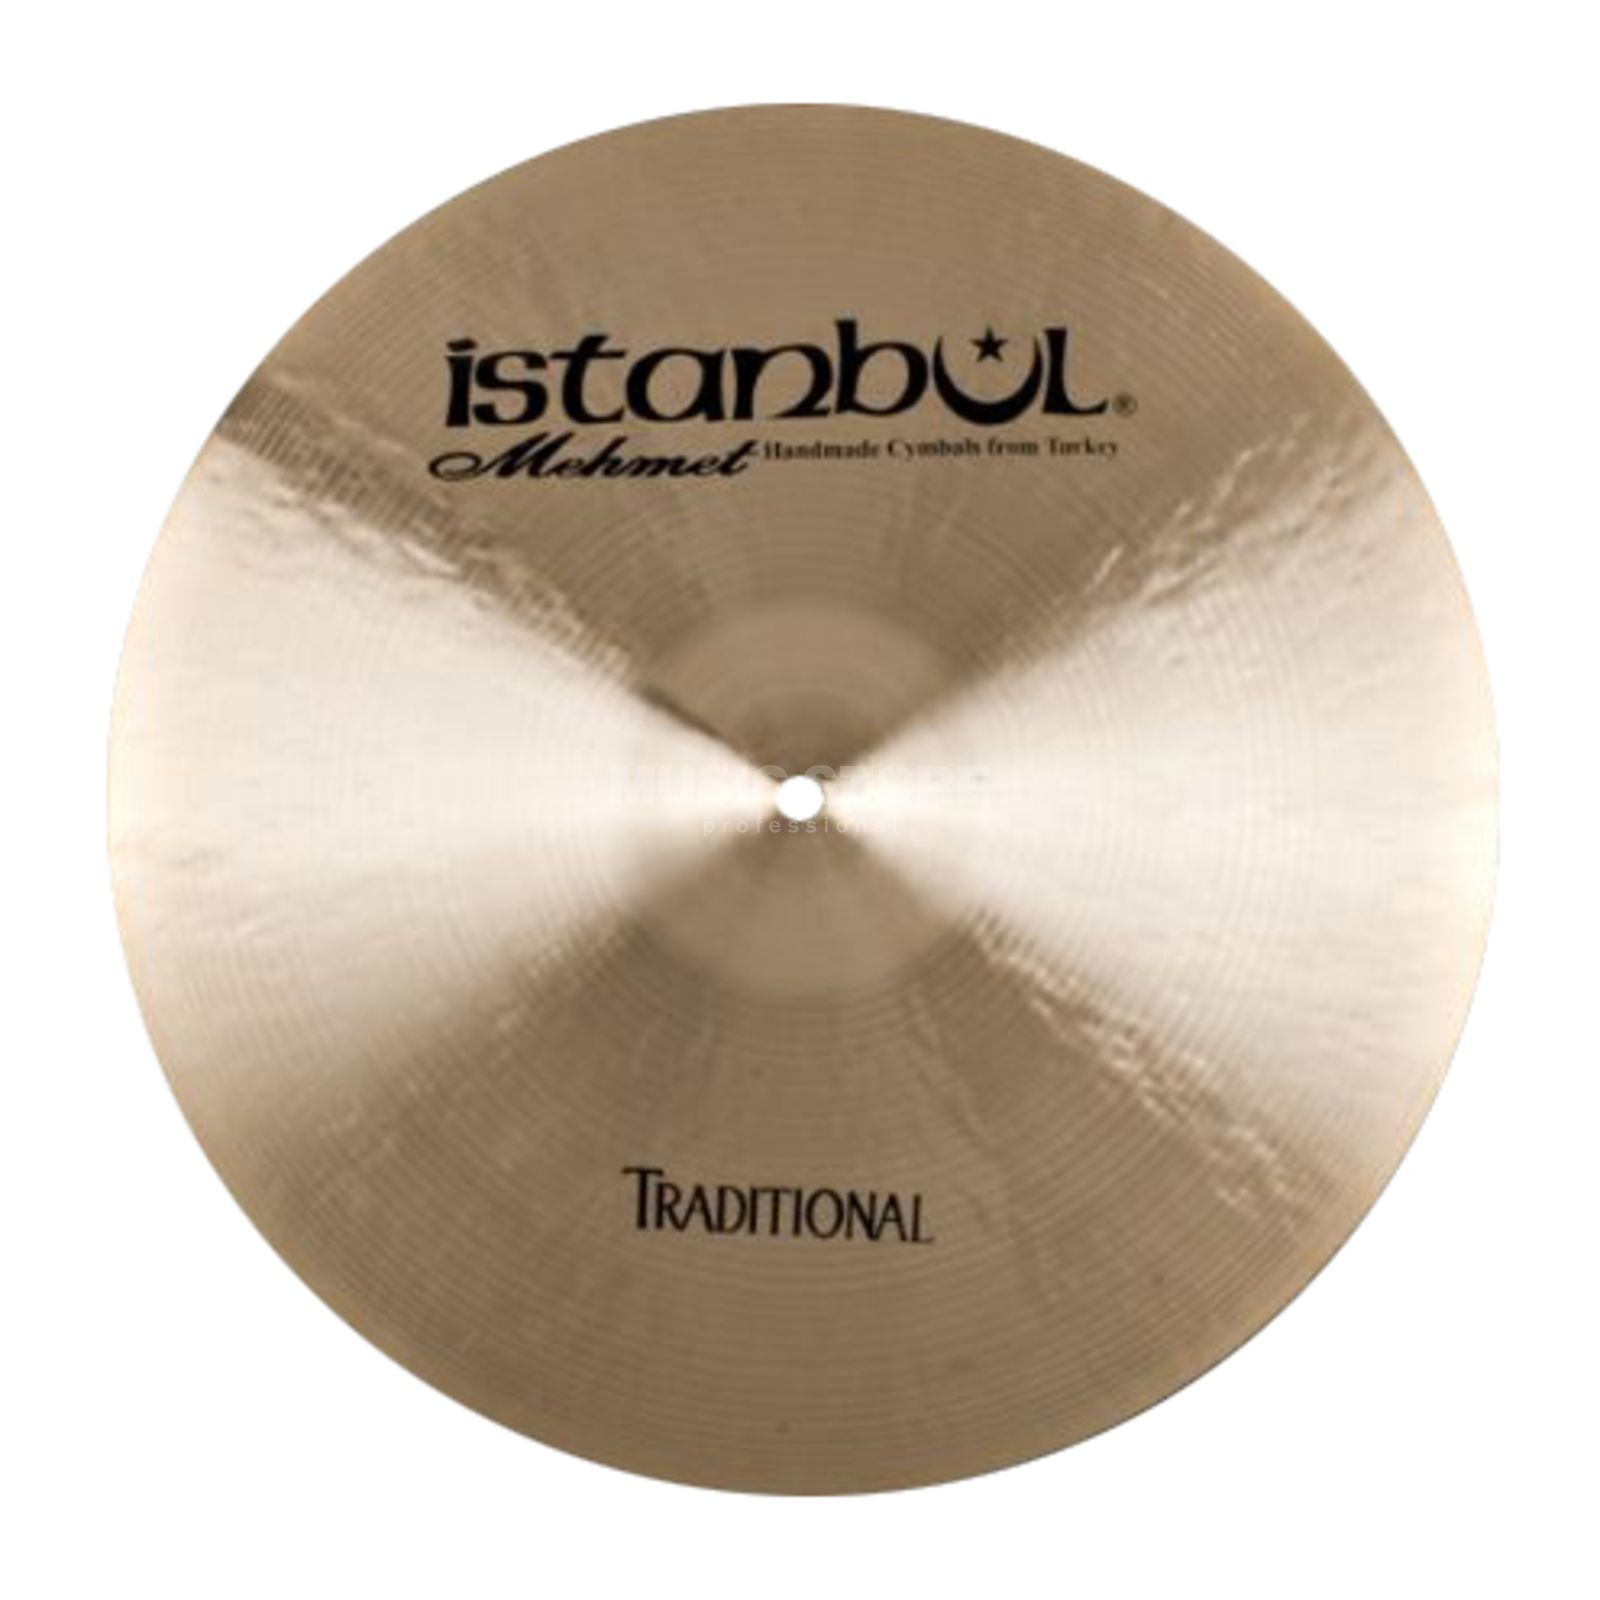 "Istanbul Traditional Heavy Crash 20"", CVY20 Produktbild"